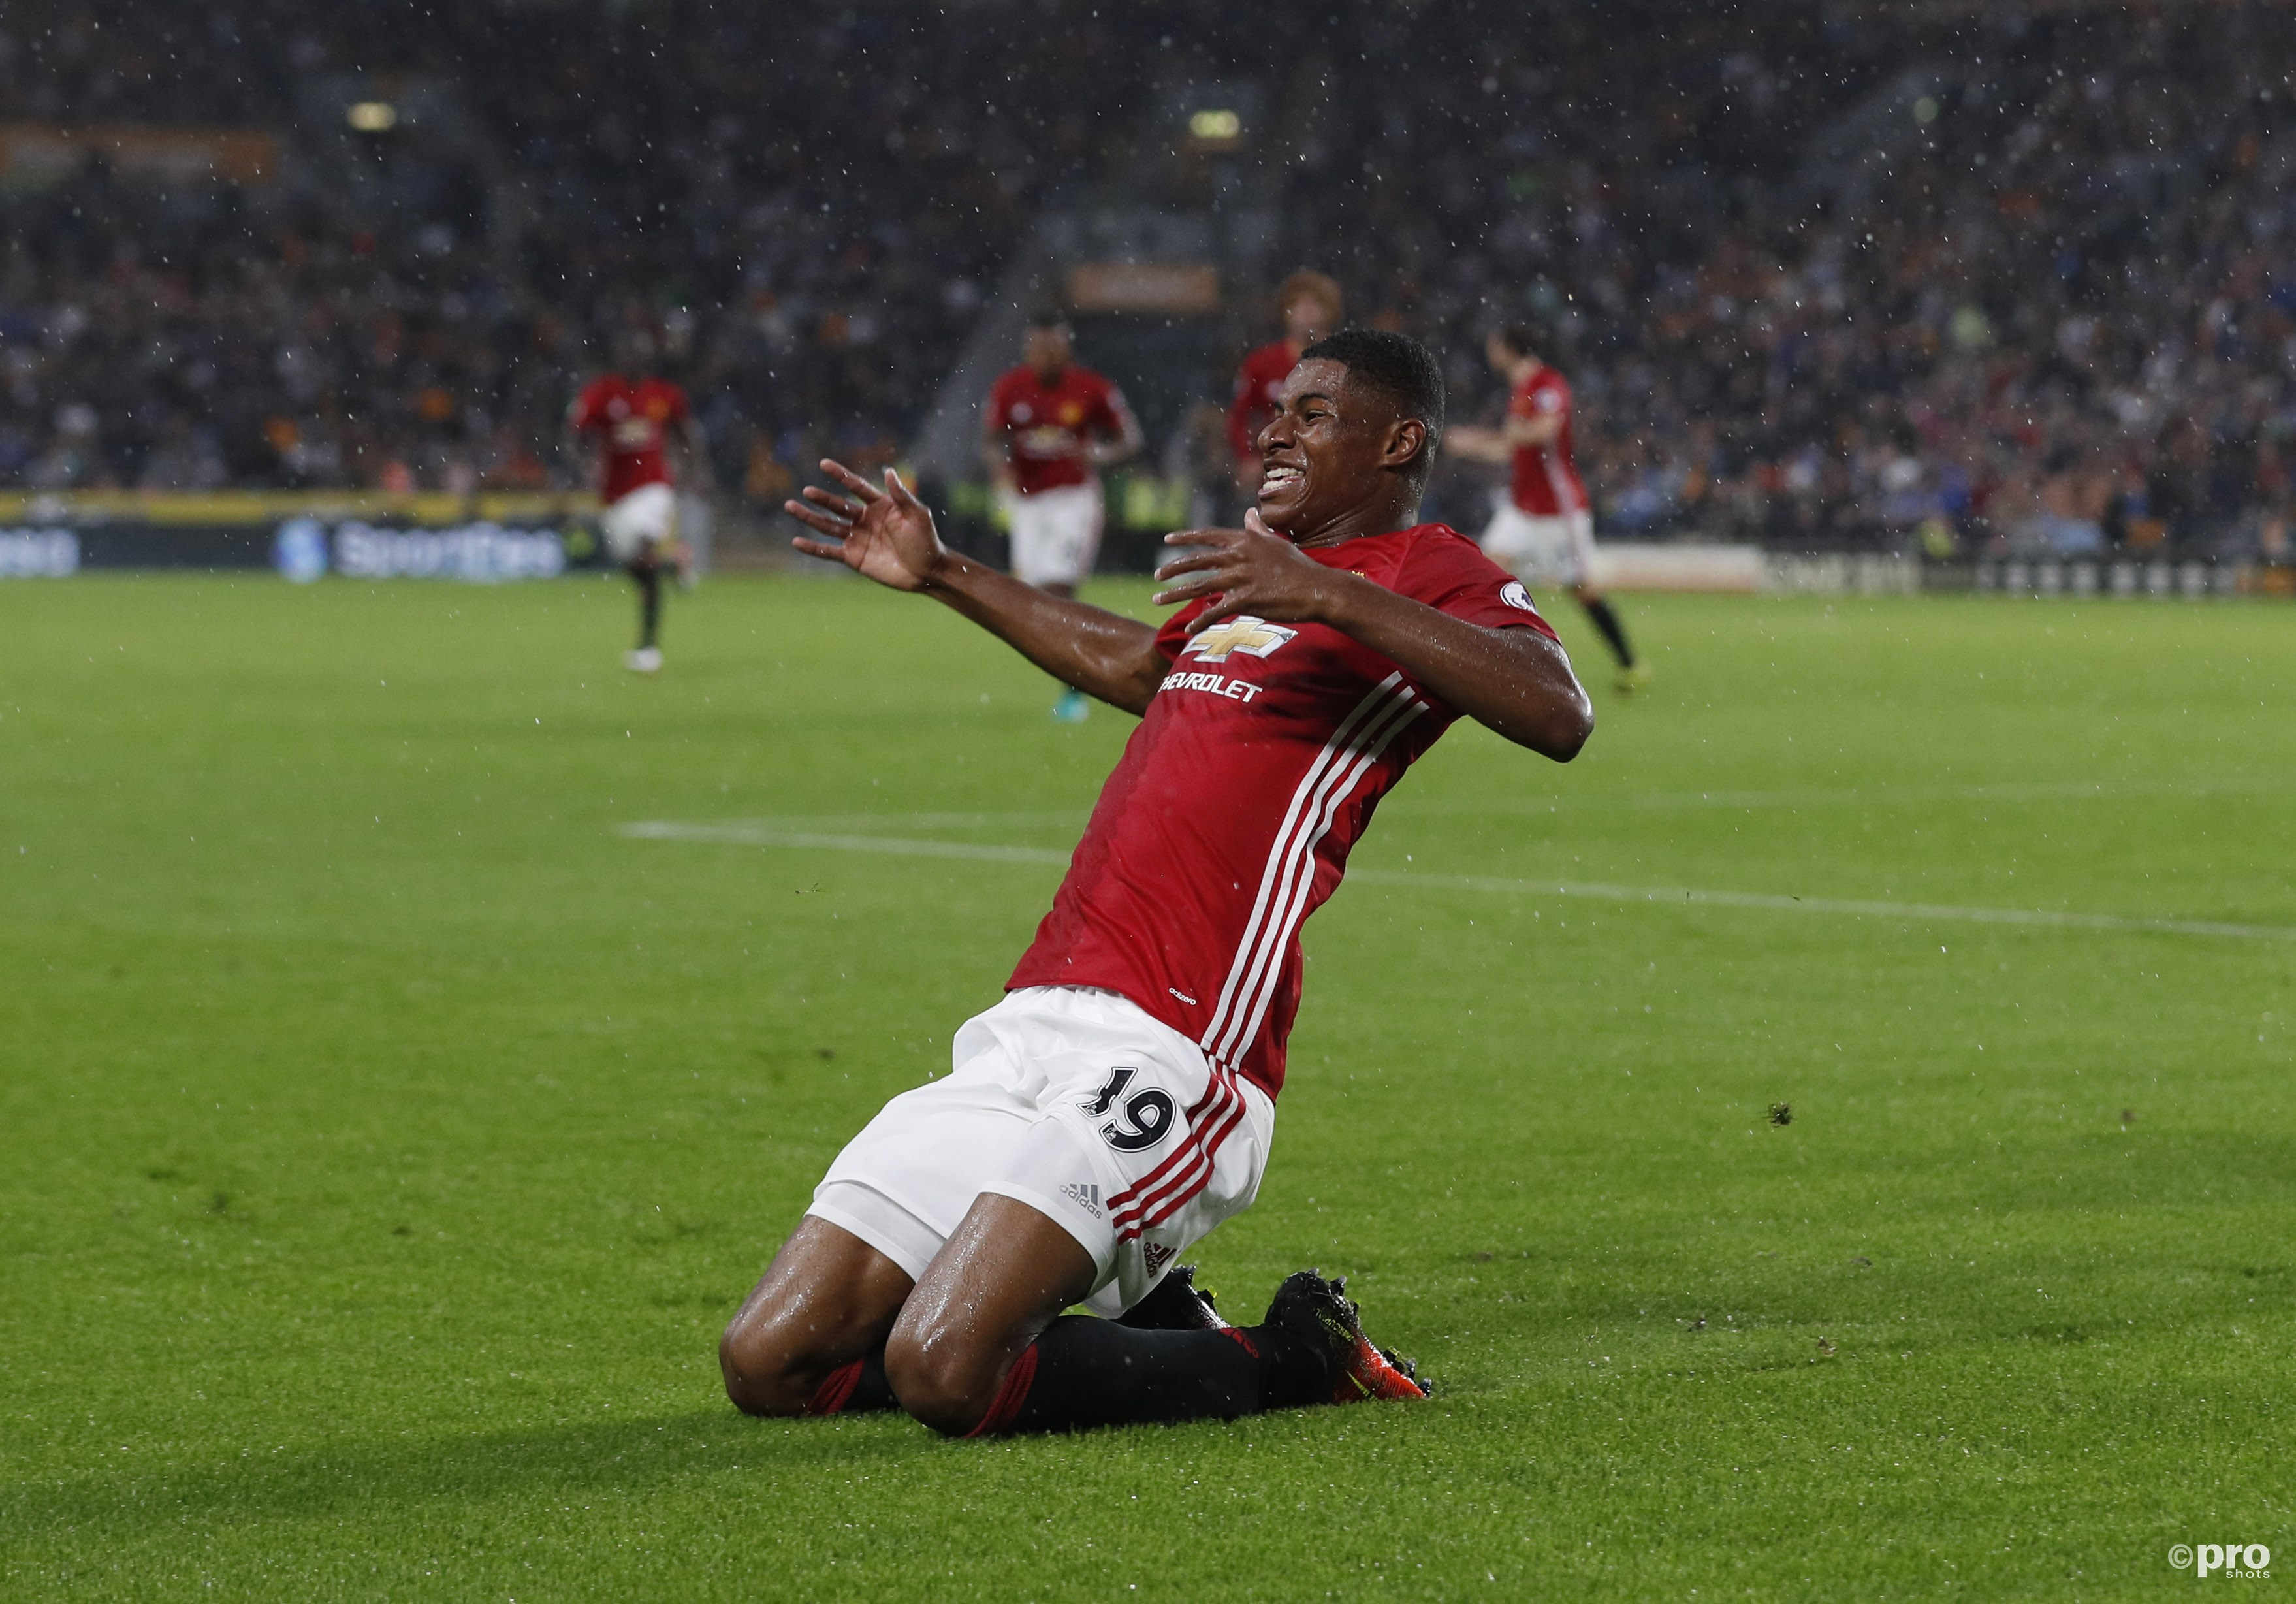 Marcus Rashford bezorgt Man. United drie punten in blessuretijd. (PRO SHOTS/Action Images)